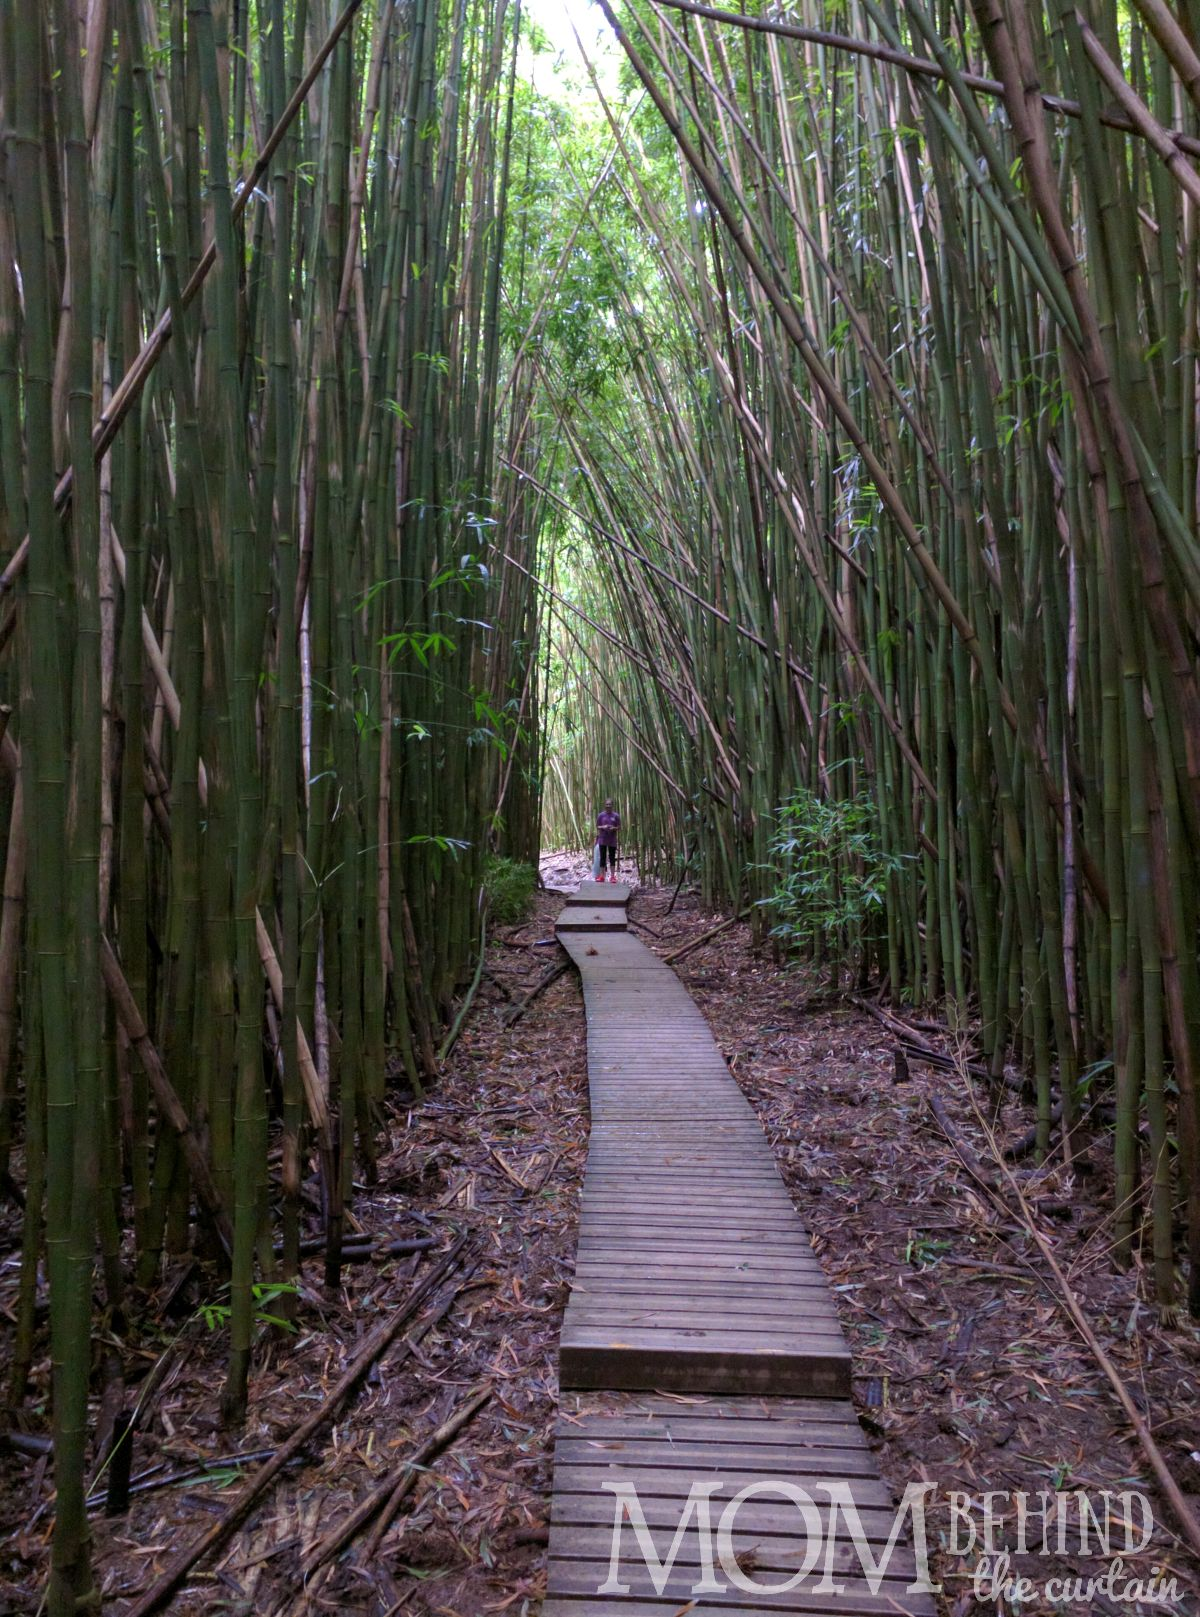 Pipiwai trail boardwalk through the bamboo forest off the Road to Hana.